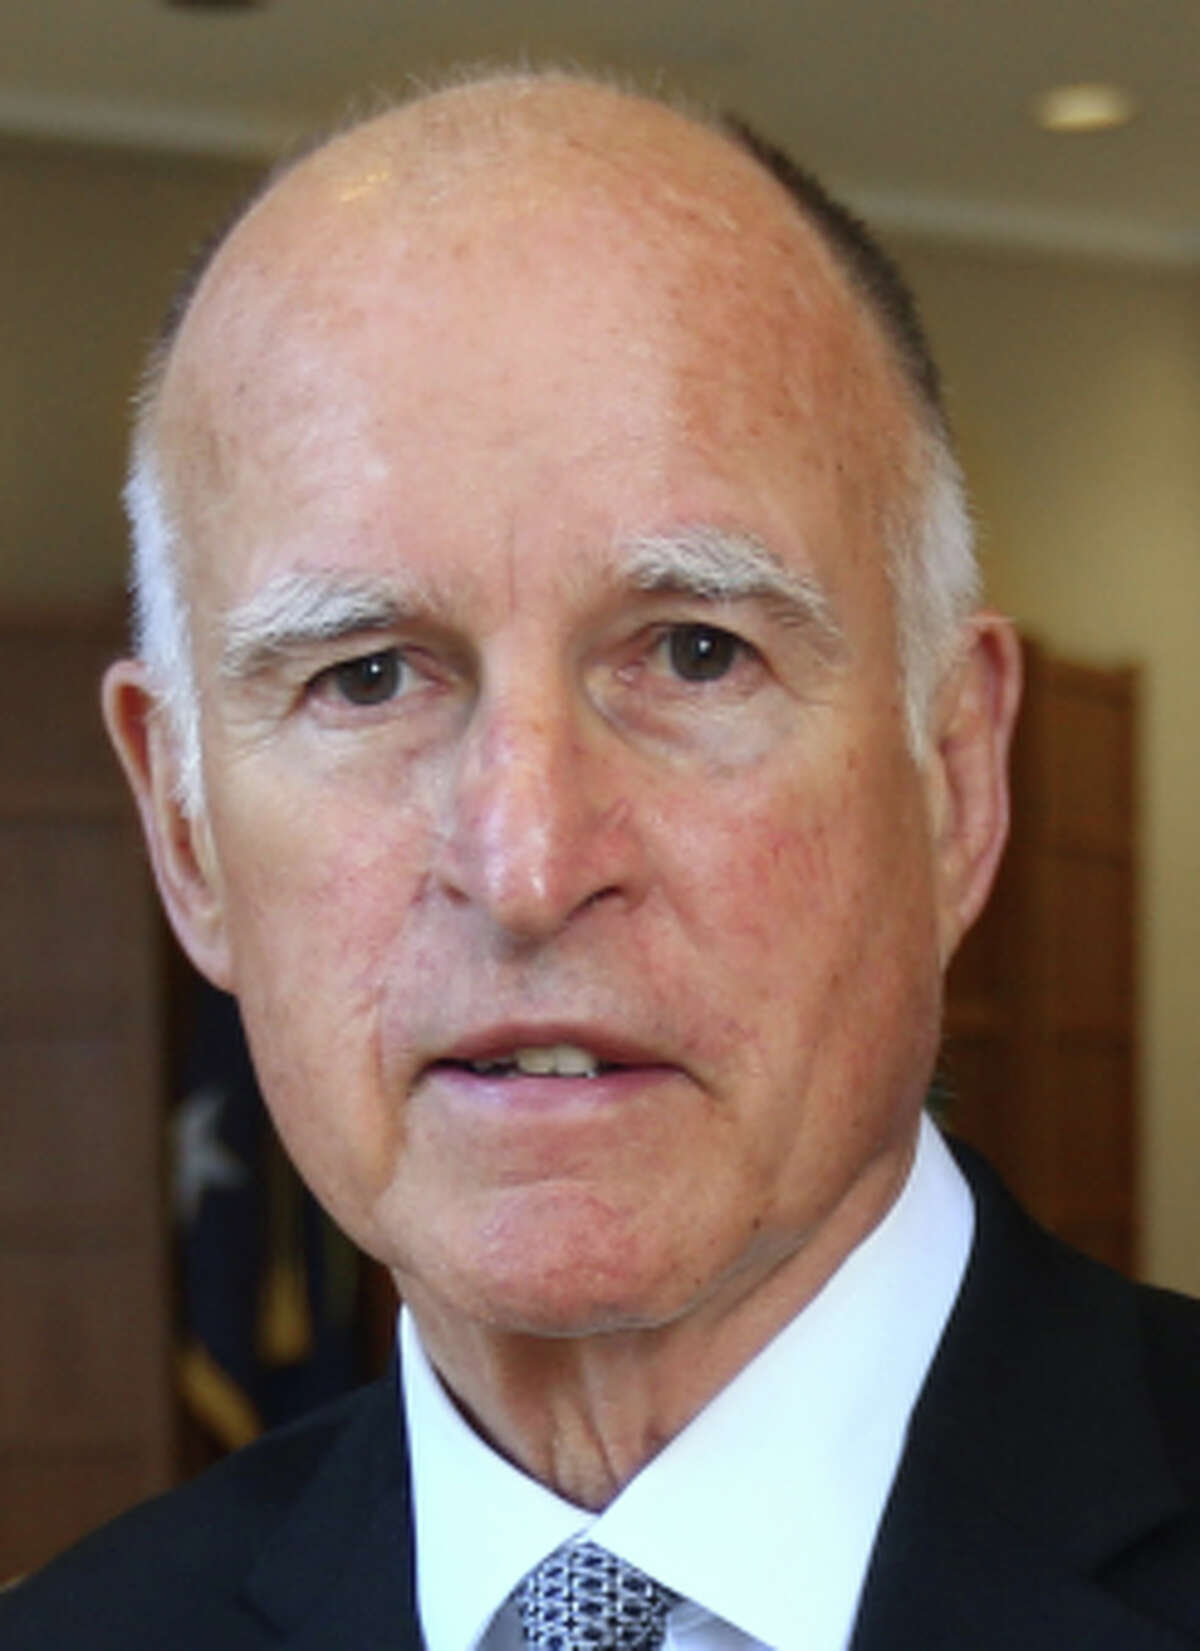 In this May 28, 2014, file photo, Gov. Jerry Brown poses in his Capitol office in Sacramento,Calif. Incumbent Brown faces Republican Neel Kashkari, a former U.S. Treasury official who has never held elective office, in the November election.